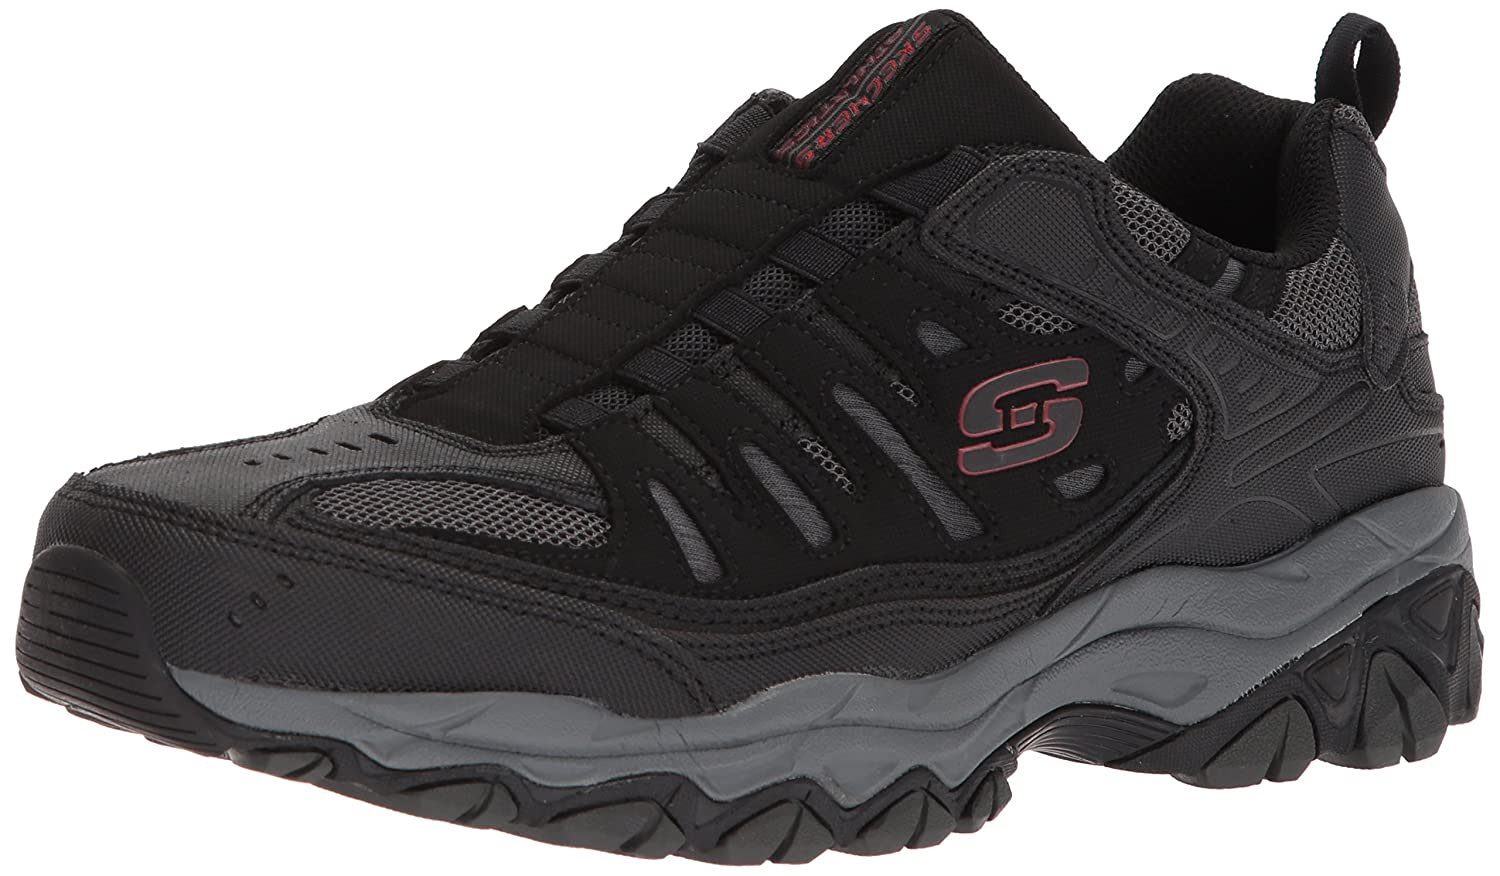 Skechers-Afterburn-Memory-Foam-M-Fit-Men-039-s-Sport-After-Burn-Sneakers-Shoes thumbnail 10